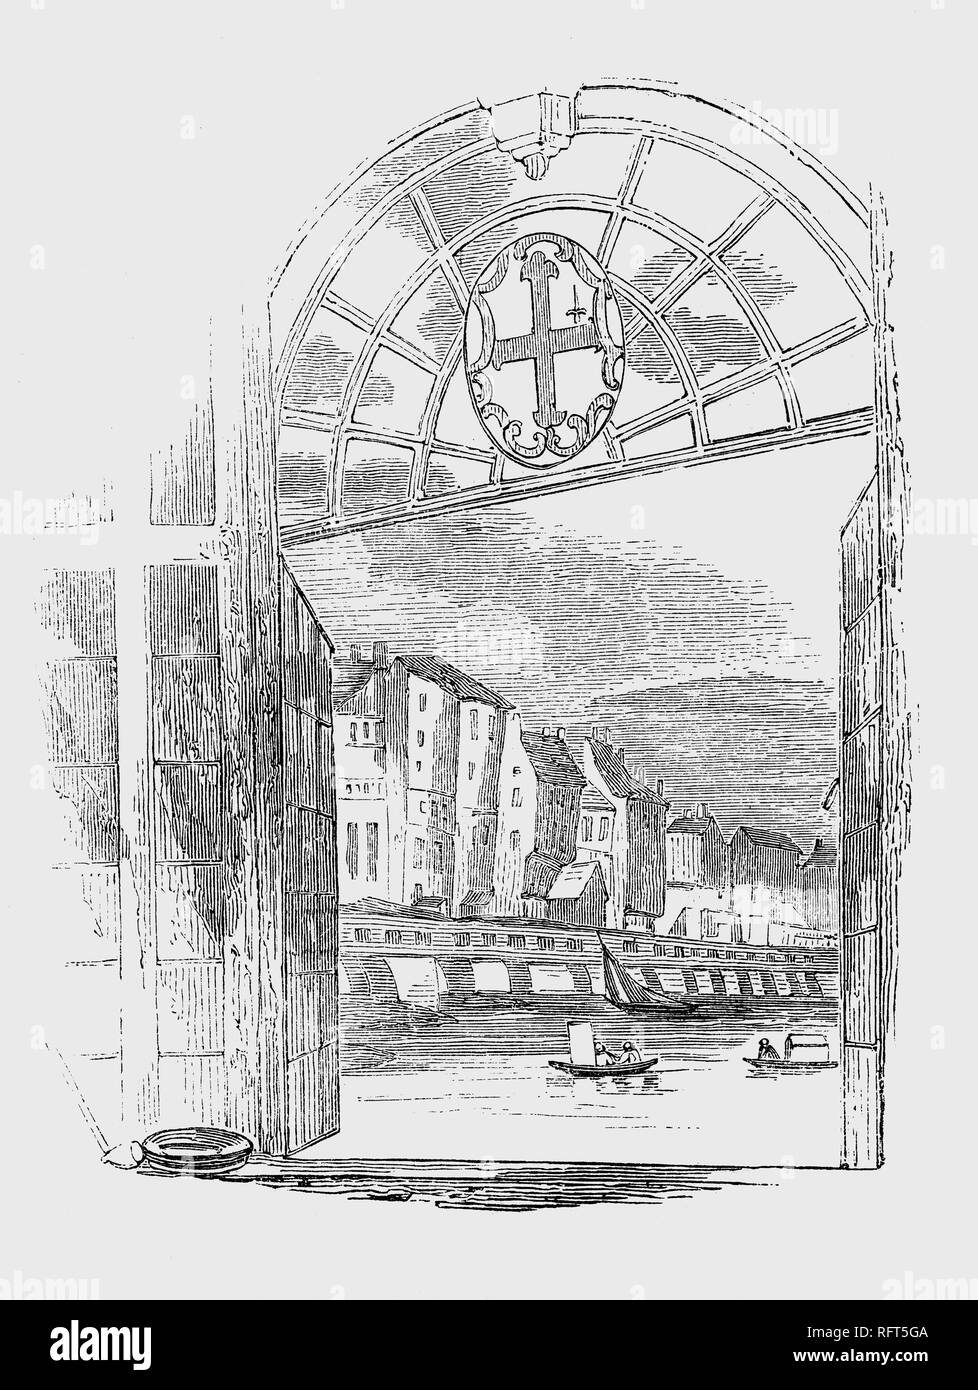 Hogarth's view of the houses on London bridge. The last houses built were in 1745, but even these elegant buildings had begun to subside within a decade. In 1756, the London Bridge Act gave the City Corporation the power to purchase all the properties on the bridge so that they could be demolished and the bridge improved. - Stock Image